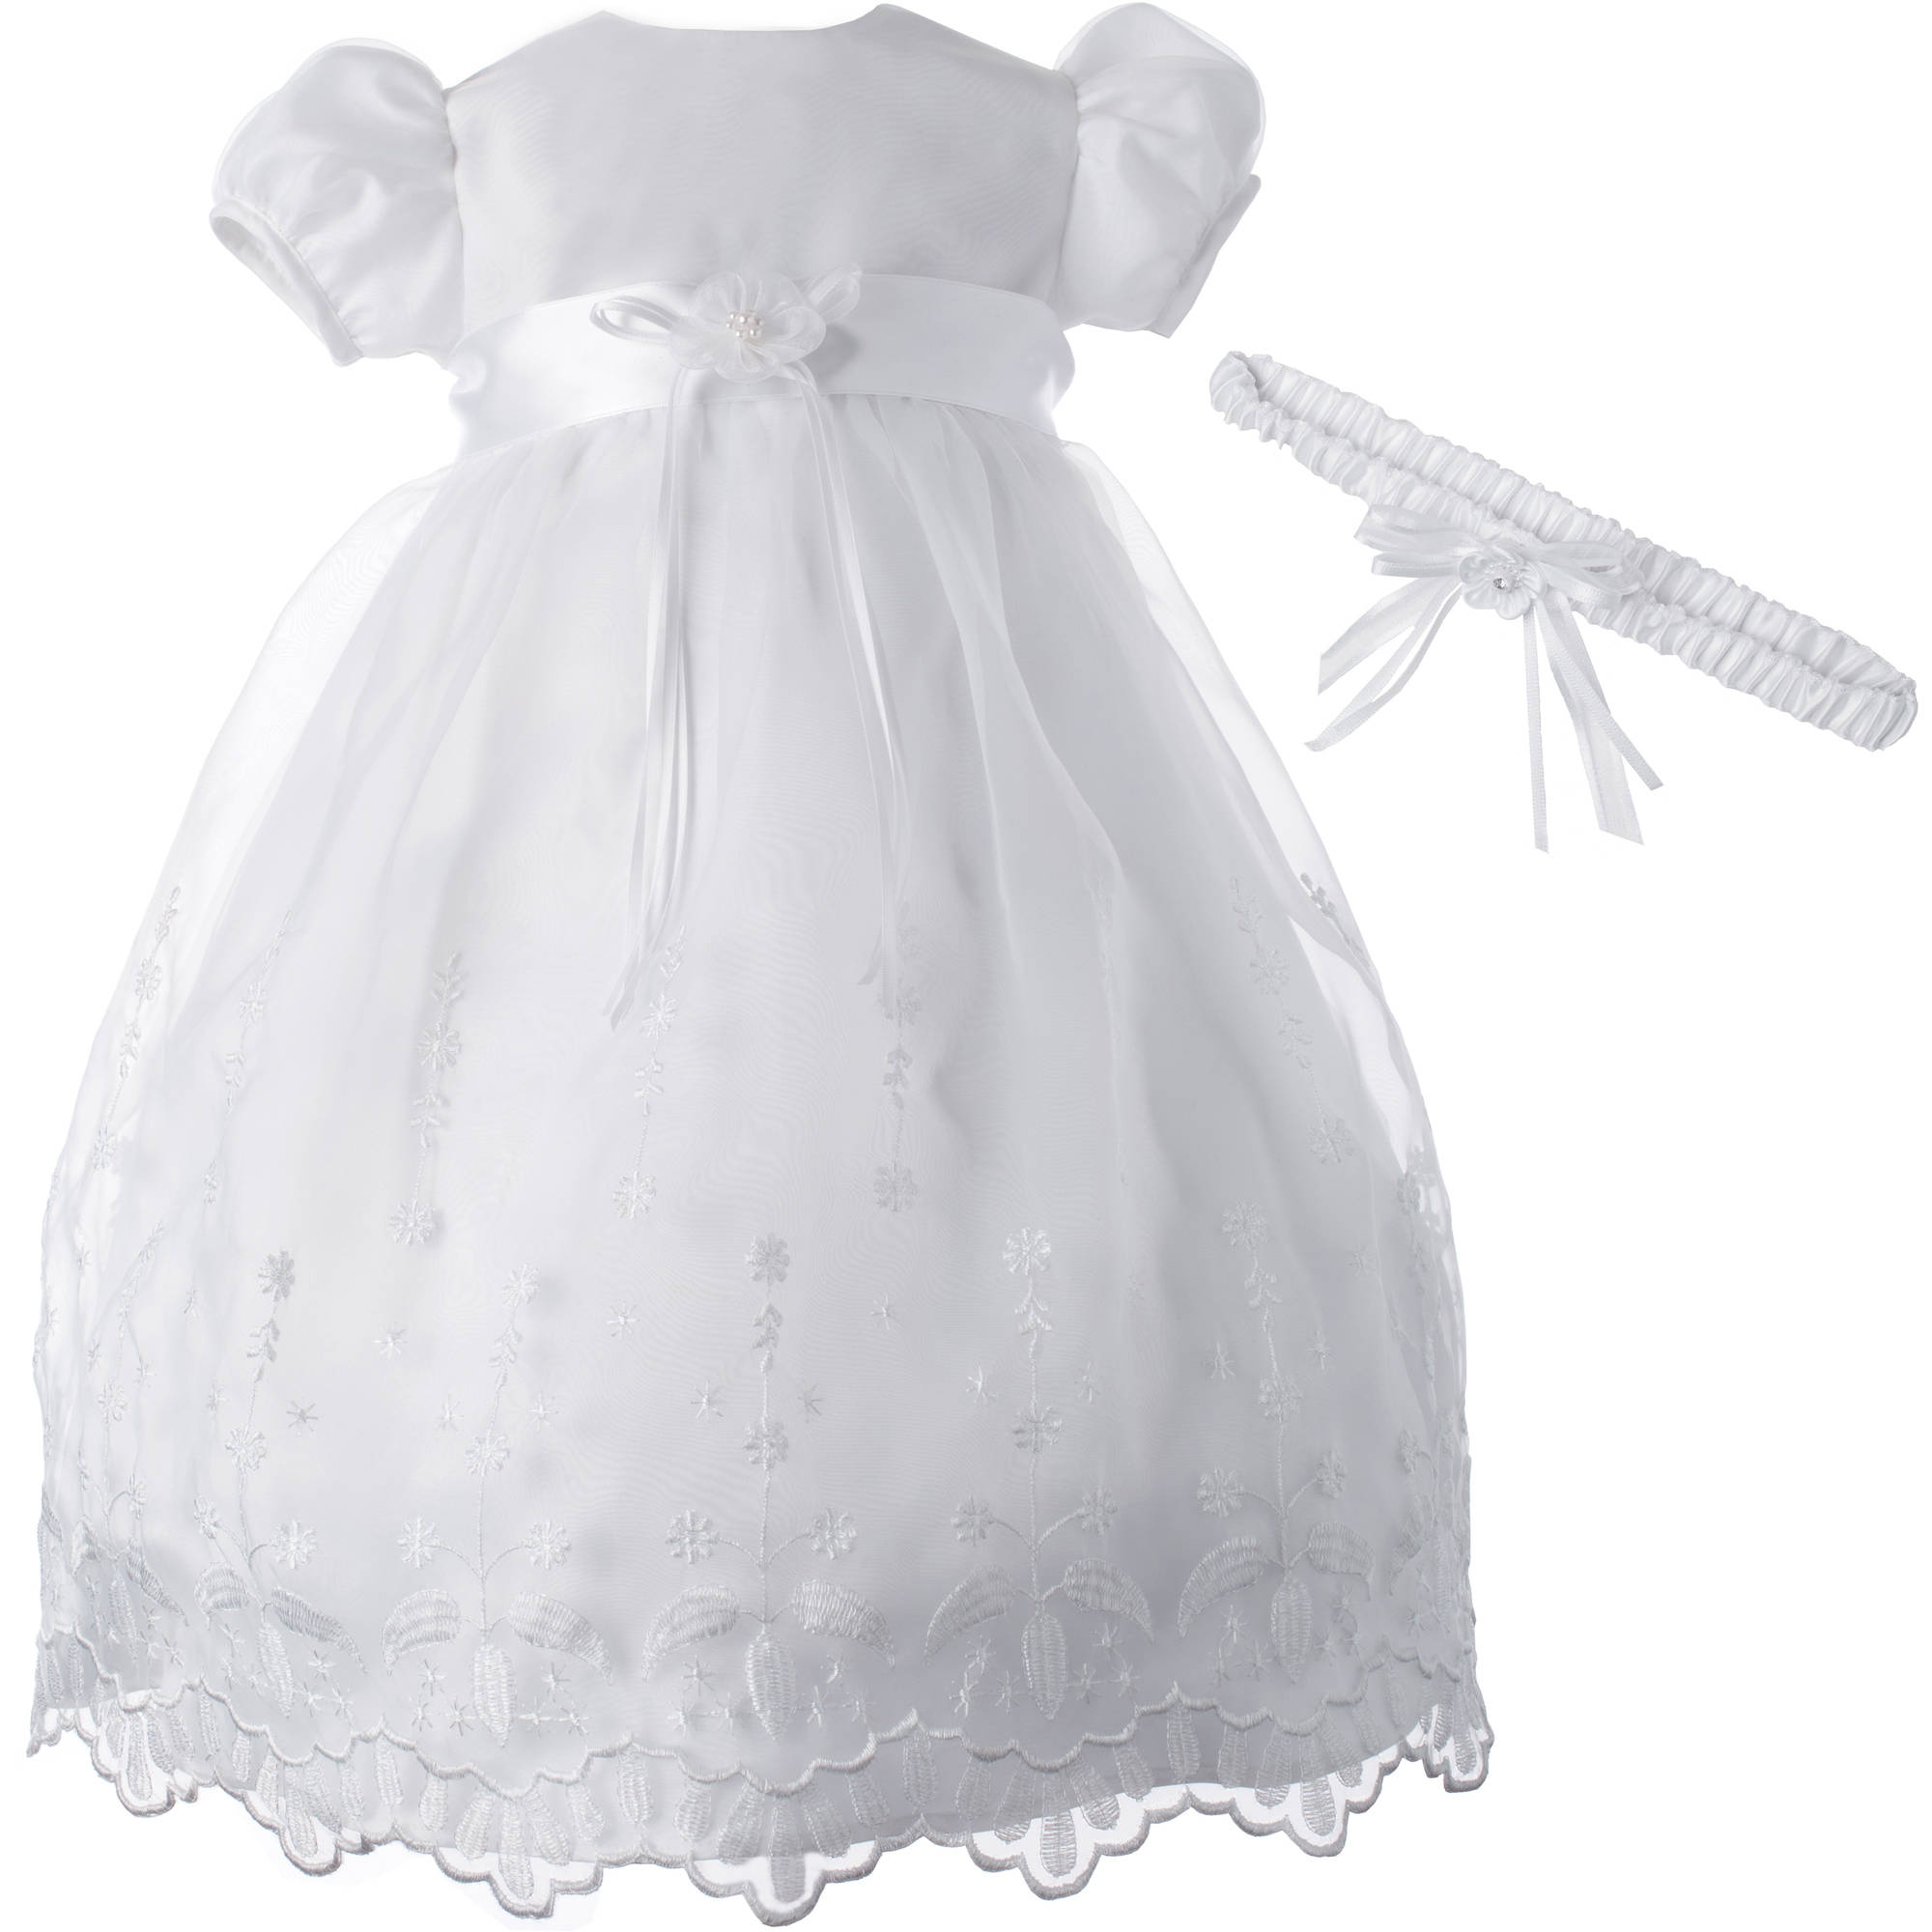 Christening Baptism Newborn Baby Girl Special Occasion Organza Over Bridal Satin Floral Embroidered Dress Gown Outfit With Scalloped Bottom